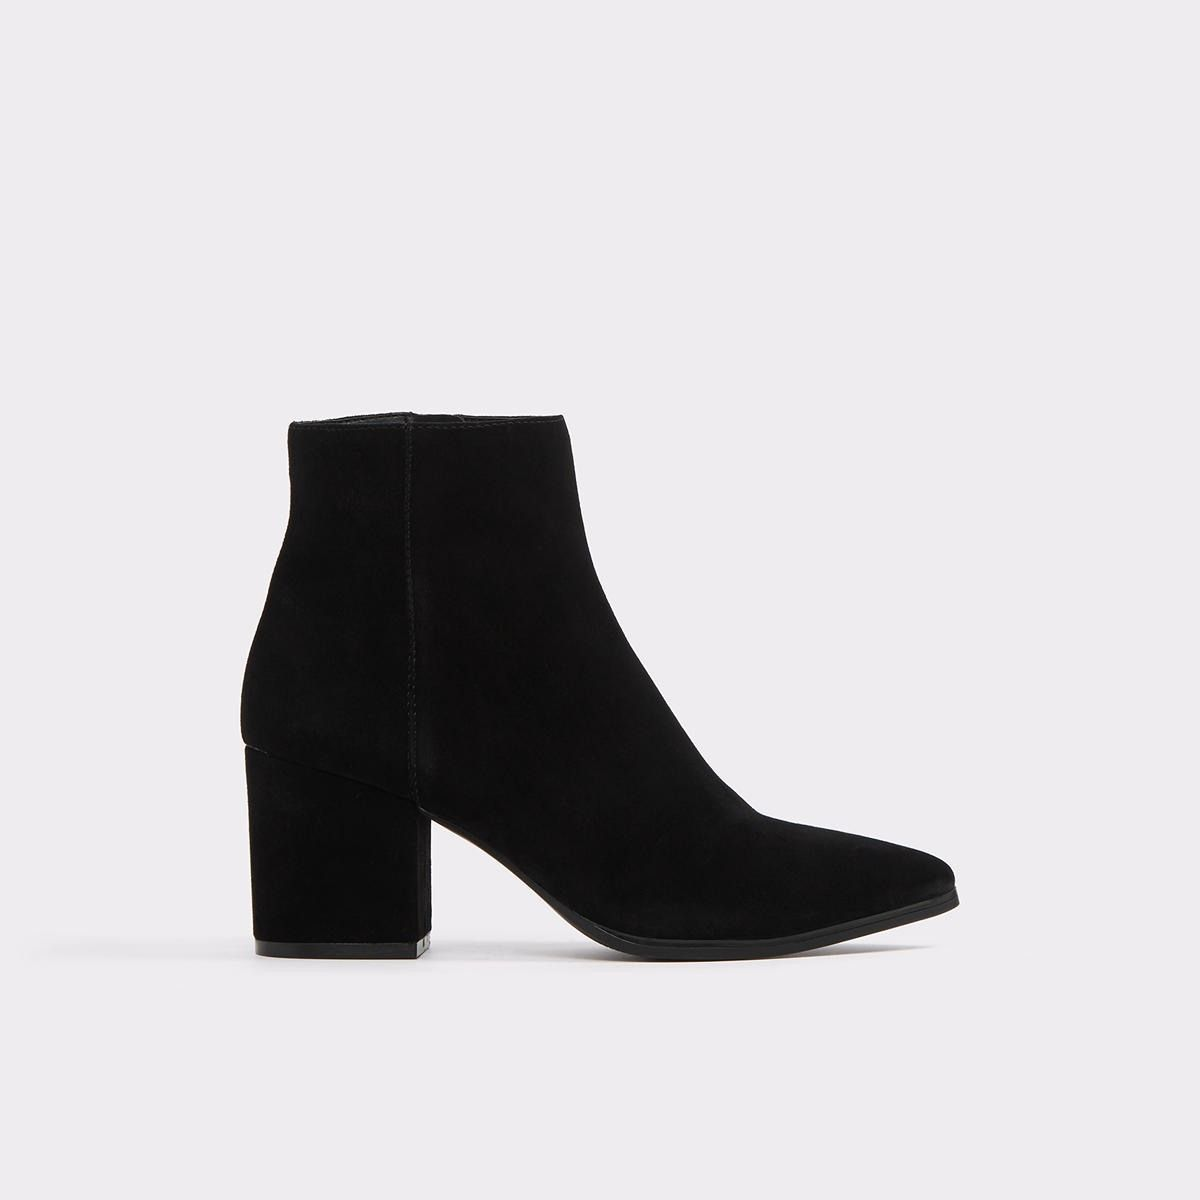 Aldo ankle boots, Womens ankle boots